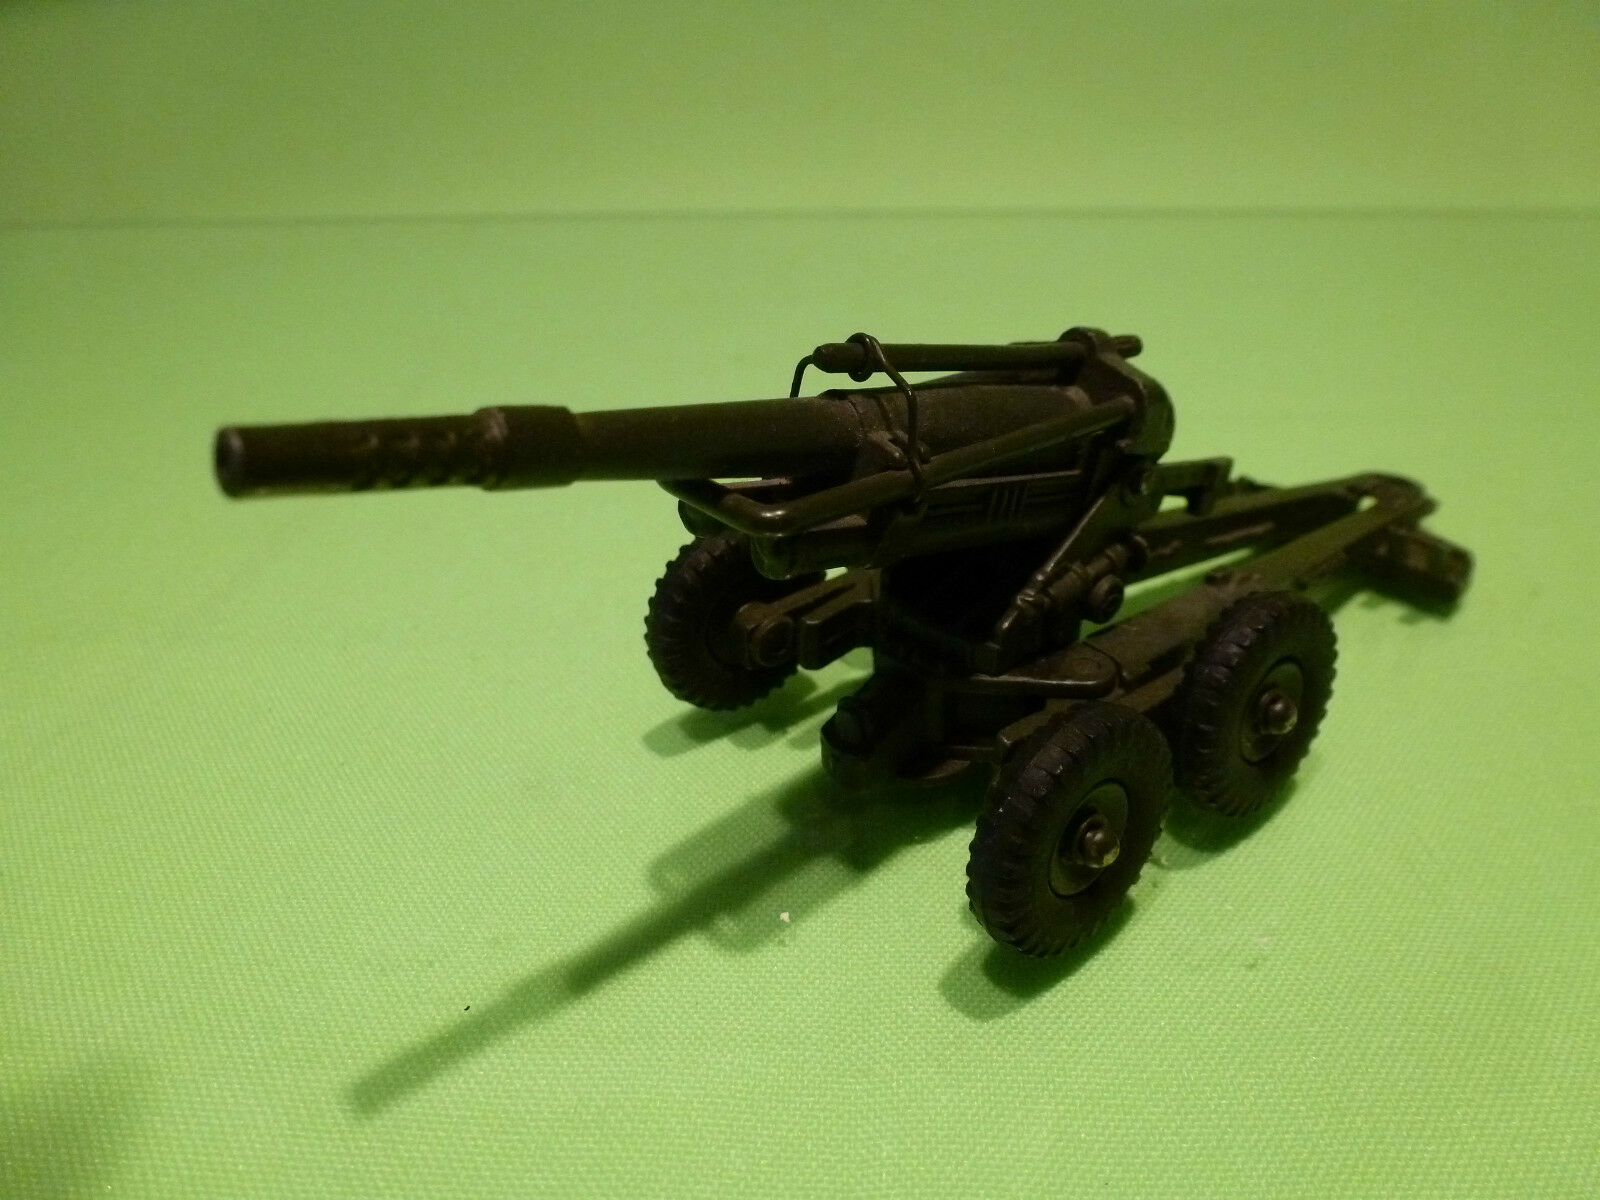 DINKY TOYS 80E OBUSIER 155mm GUN - FRANCE ARMY GREEN 1 55 - VERY GOOD - MILITARY